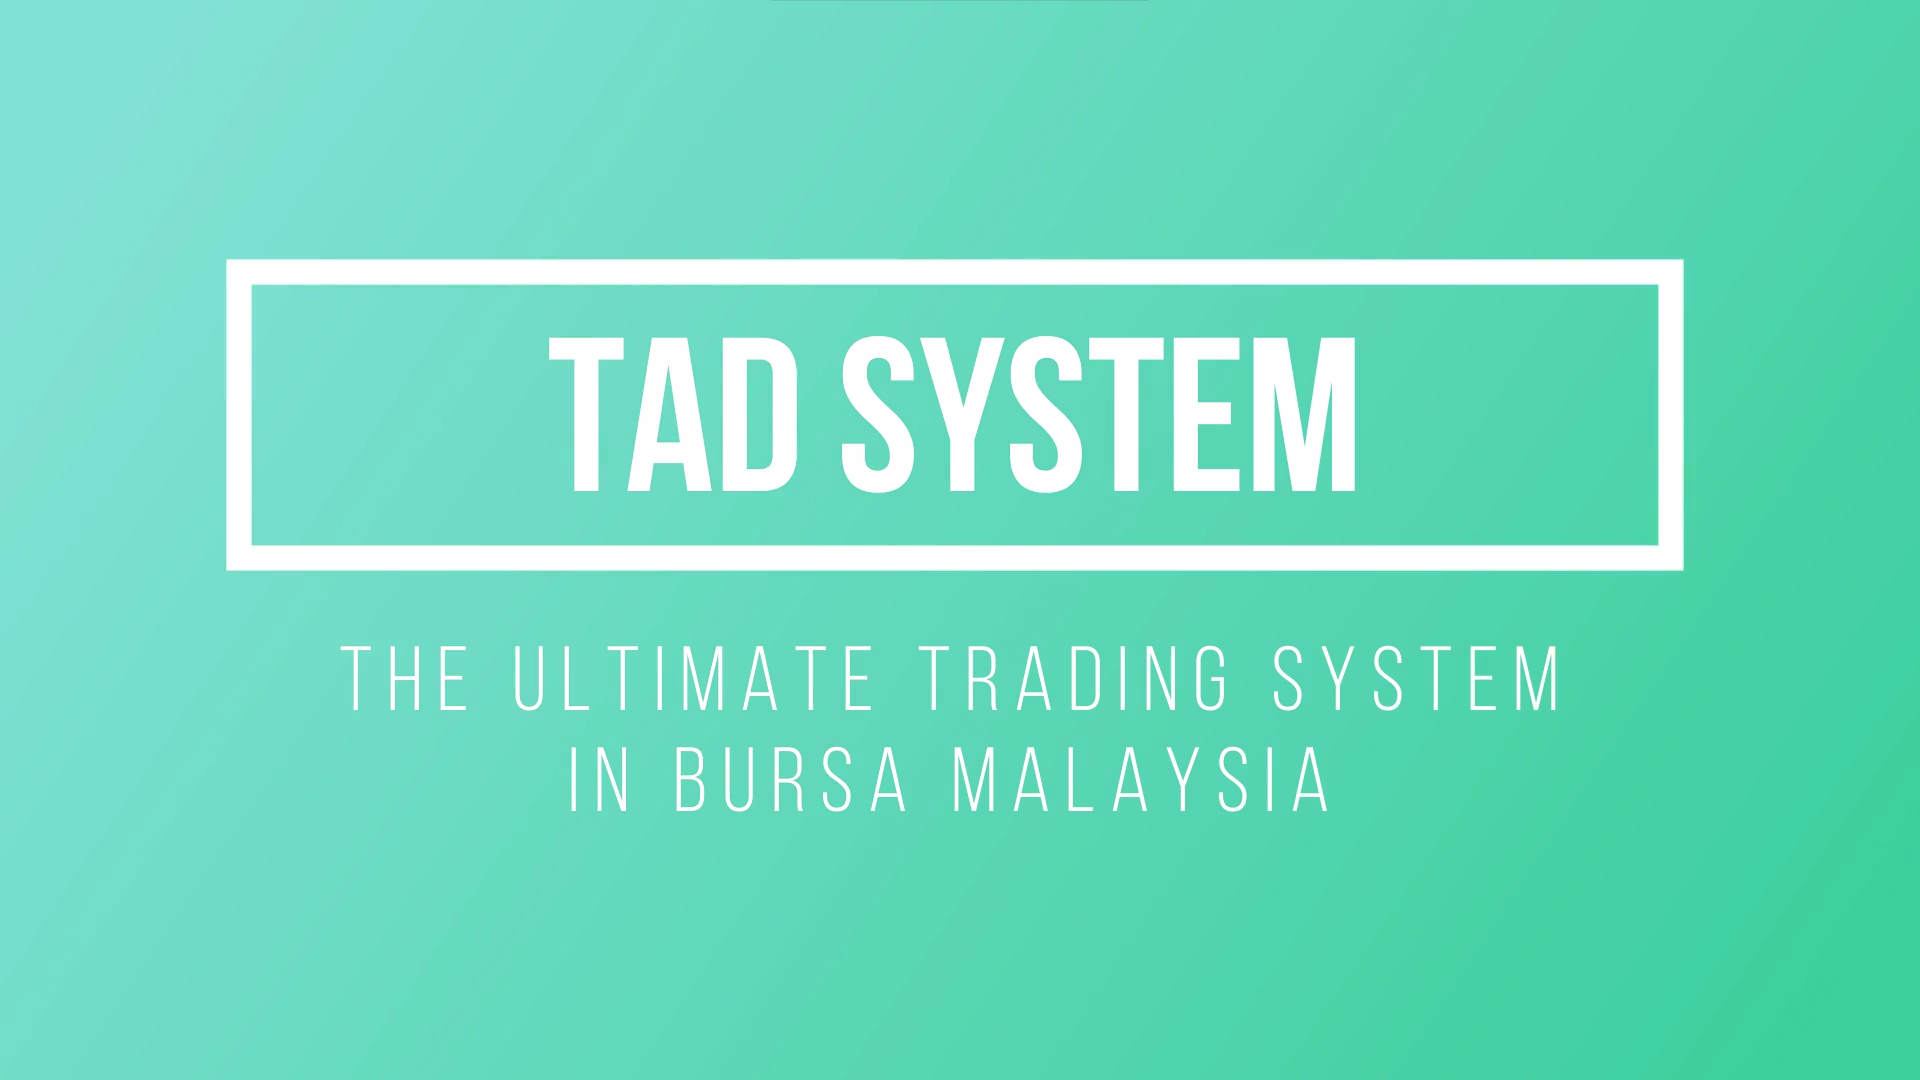 the ultimate trading template tad system